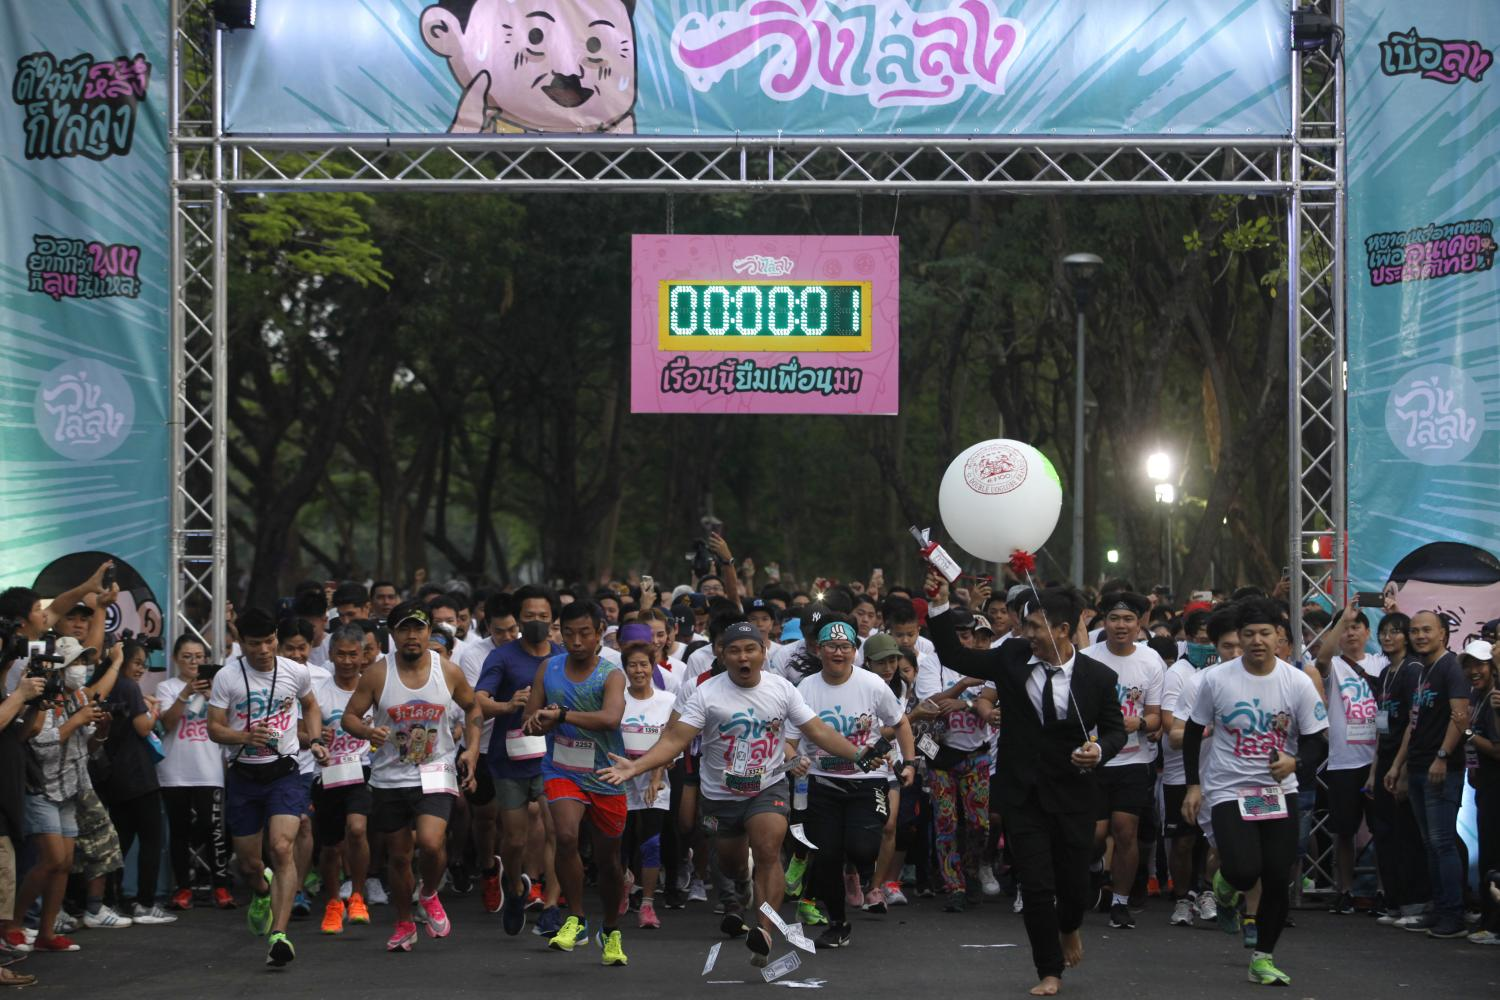 A large number of people participate in the anti-government run organised on Sunday at Rot Fai Park in Chatuchak district of Bangkok. (Photo by Wichan Charoenkiatpakul)